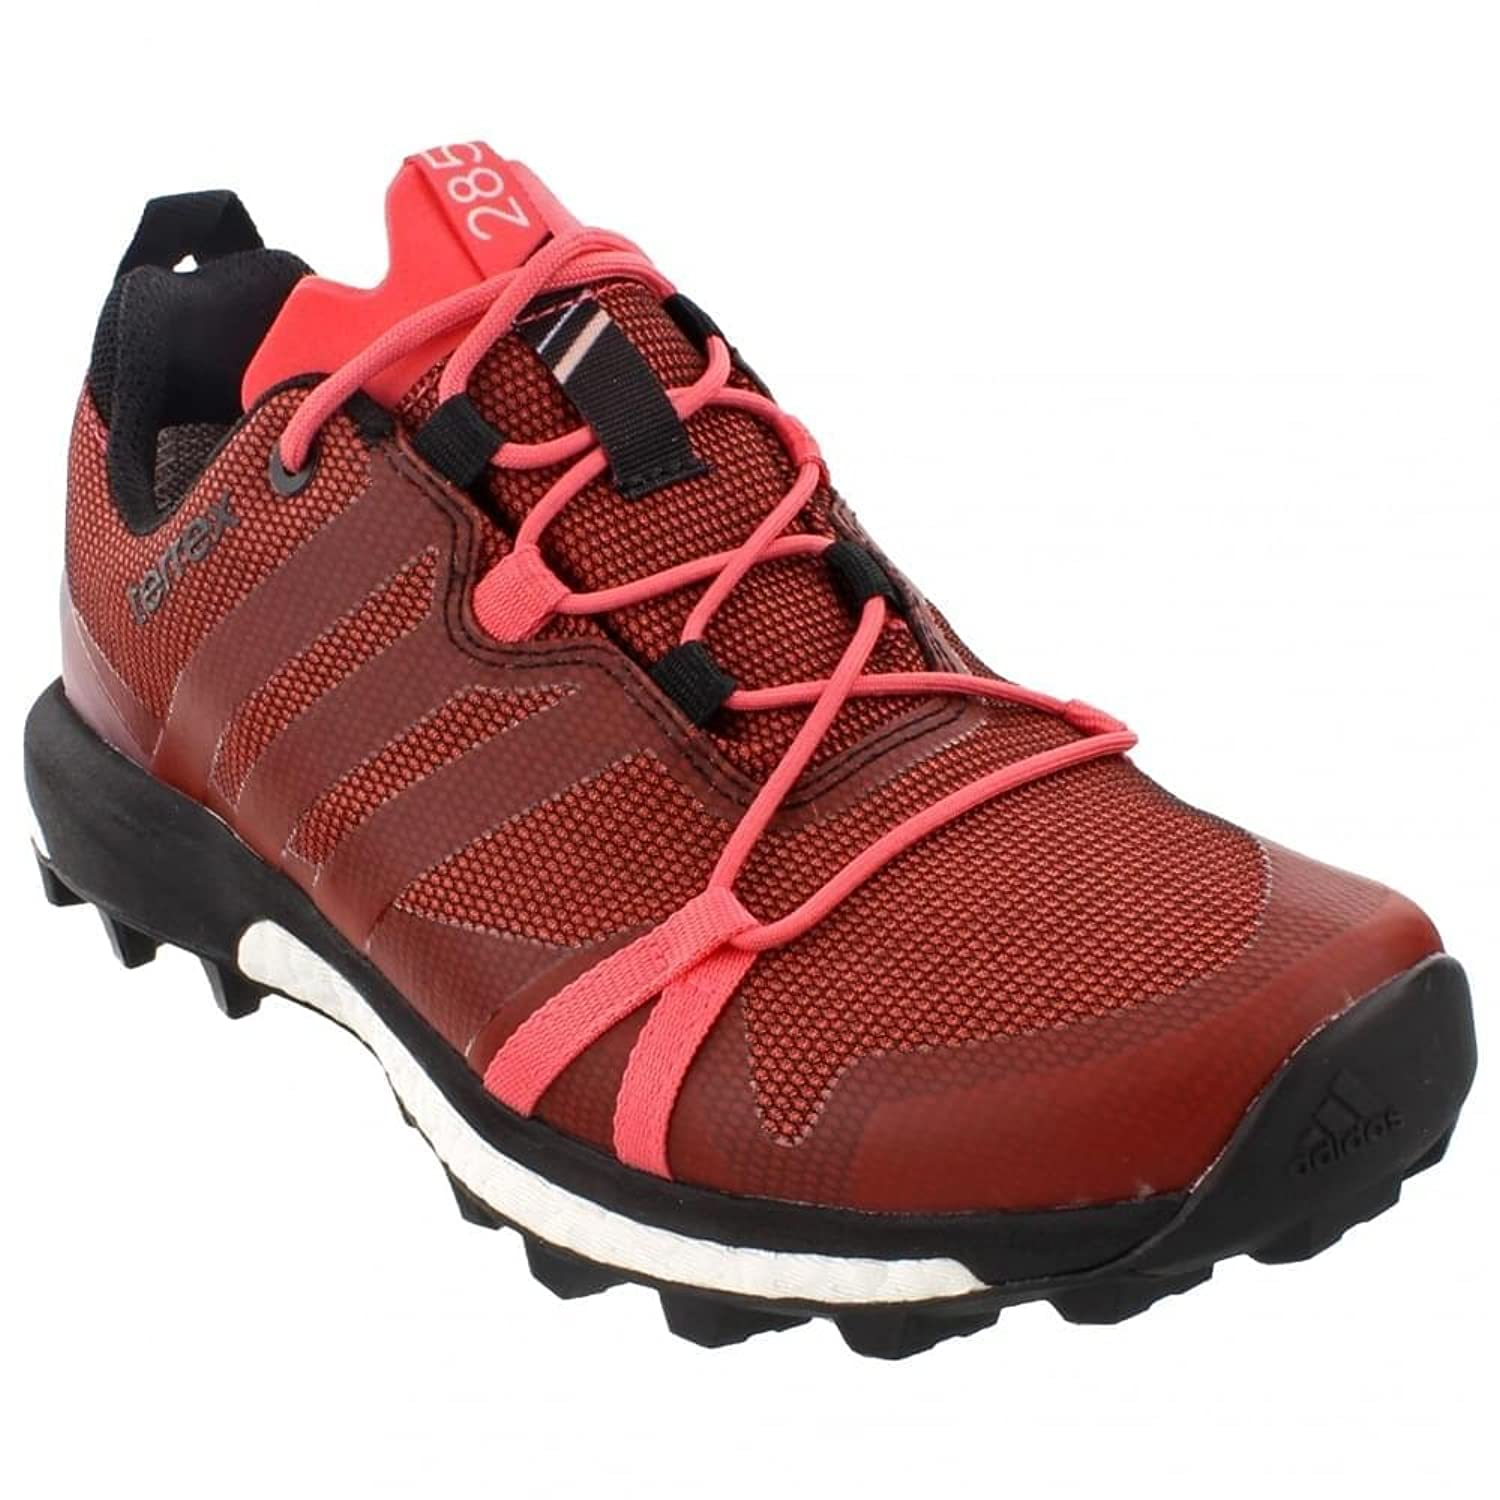 4afbfb28ee521 new Adidas Sport Performance Women s Terrex Agravic GTX Trail Running  Textile Sneakers